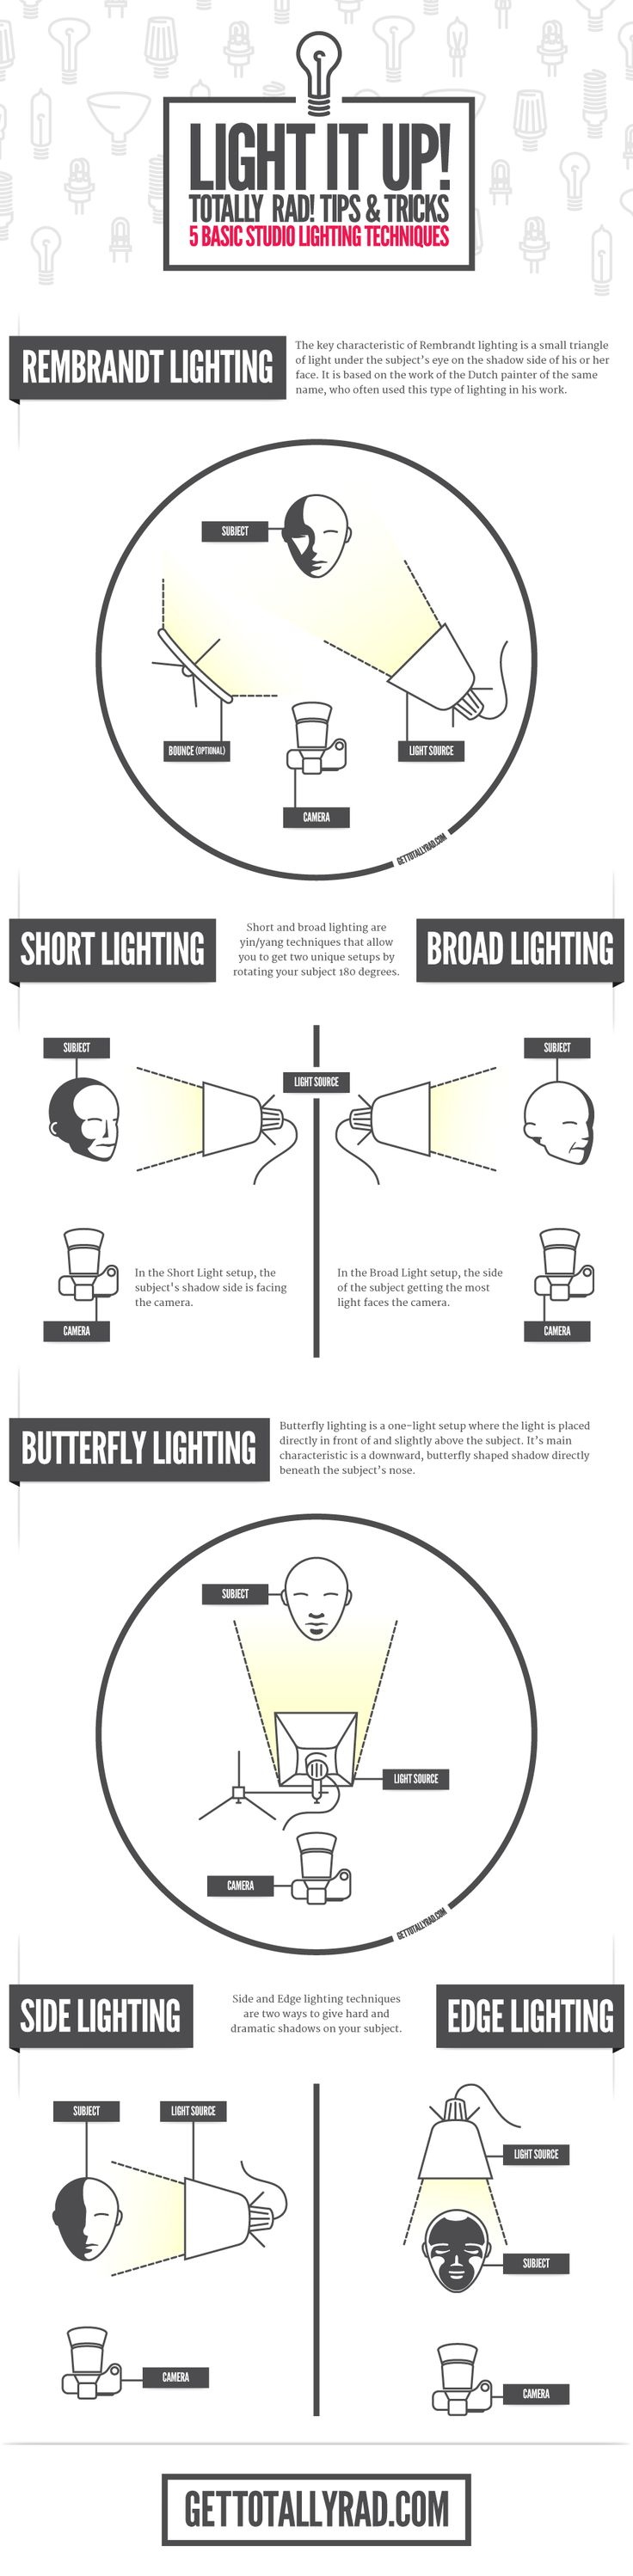 88 best Shooting With lighting images on Pinterest | Photography ...